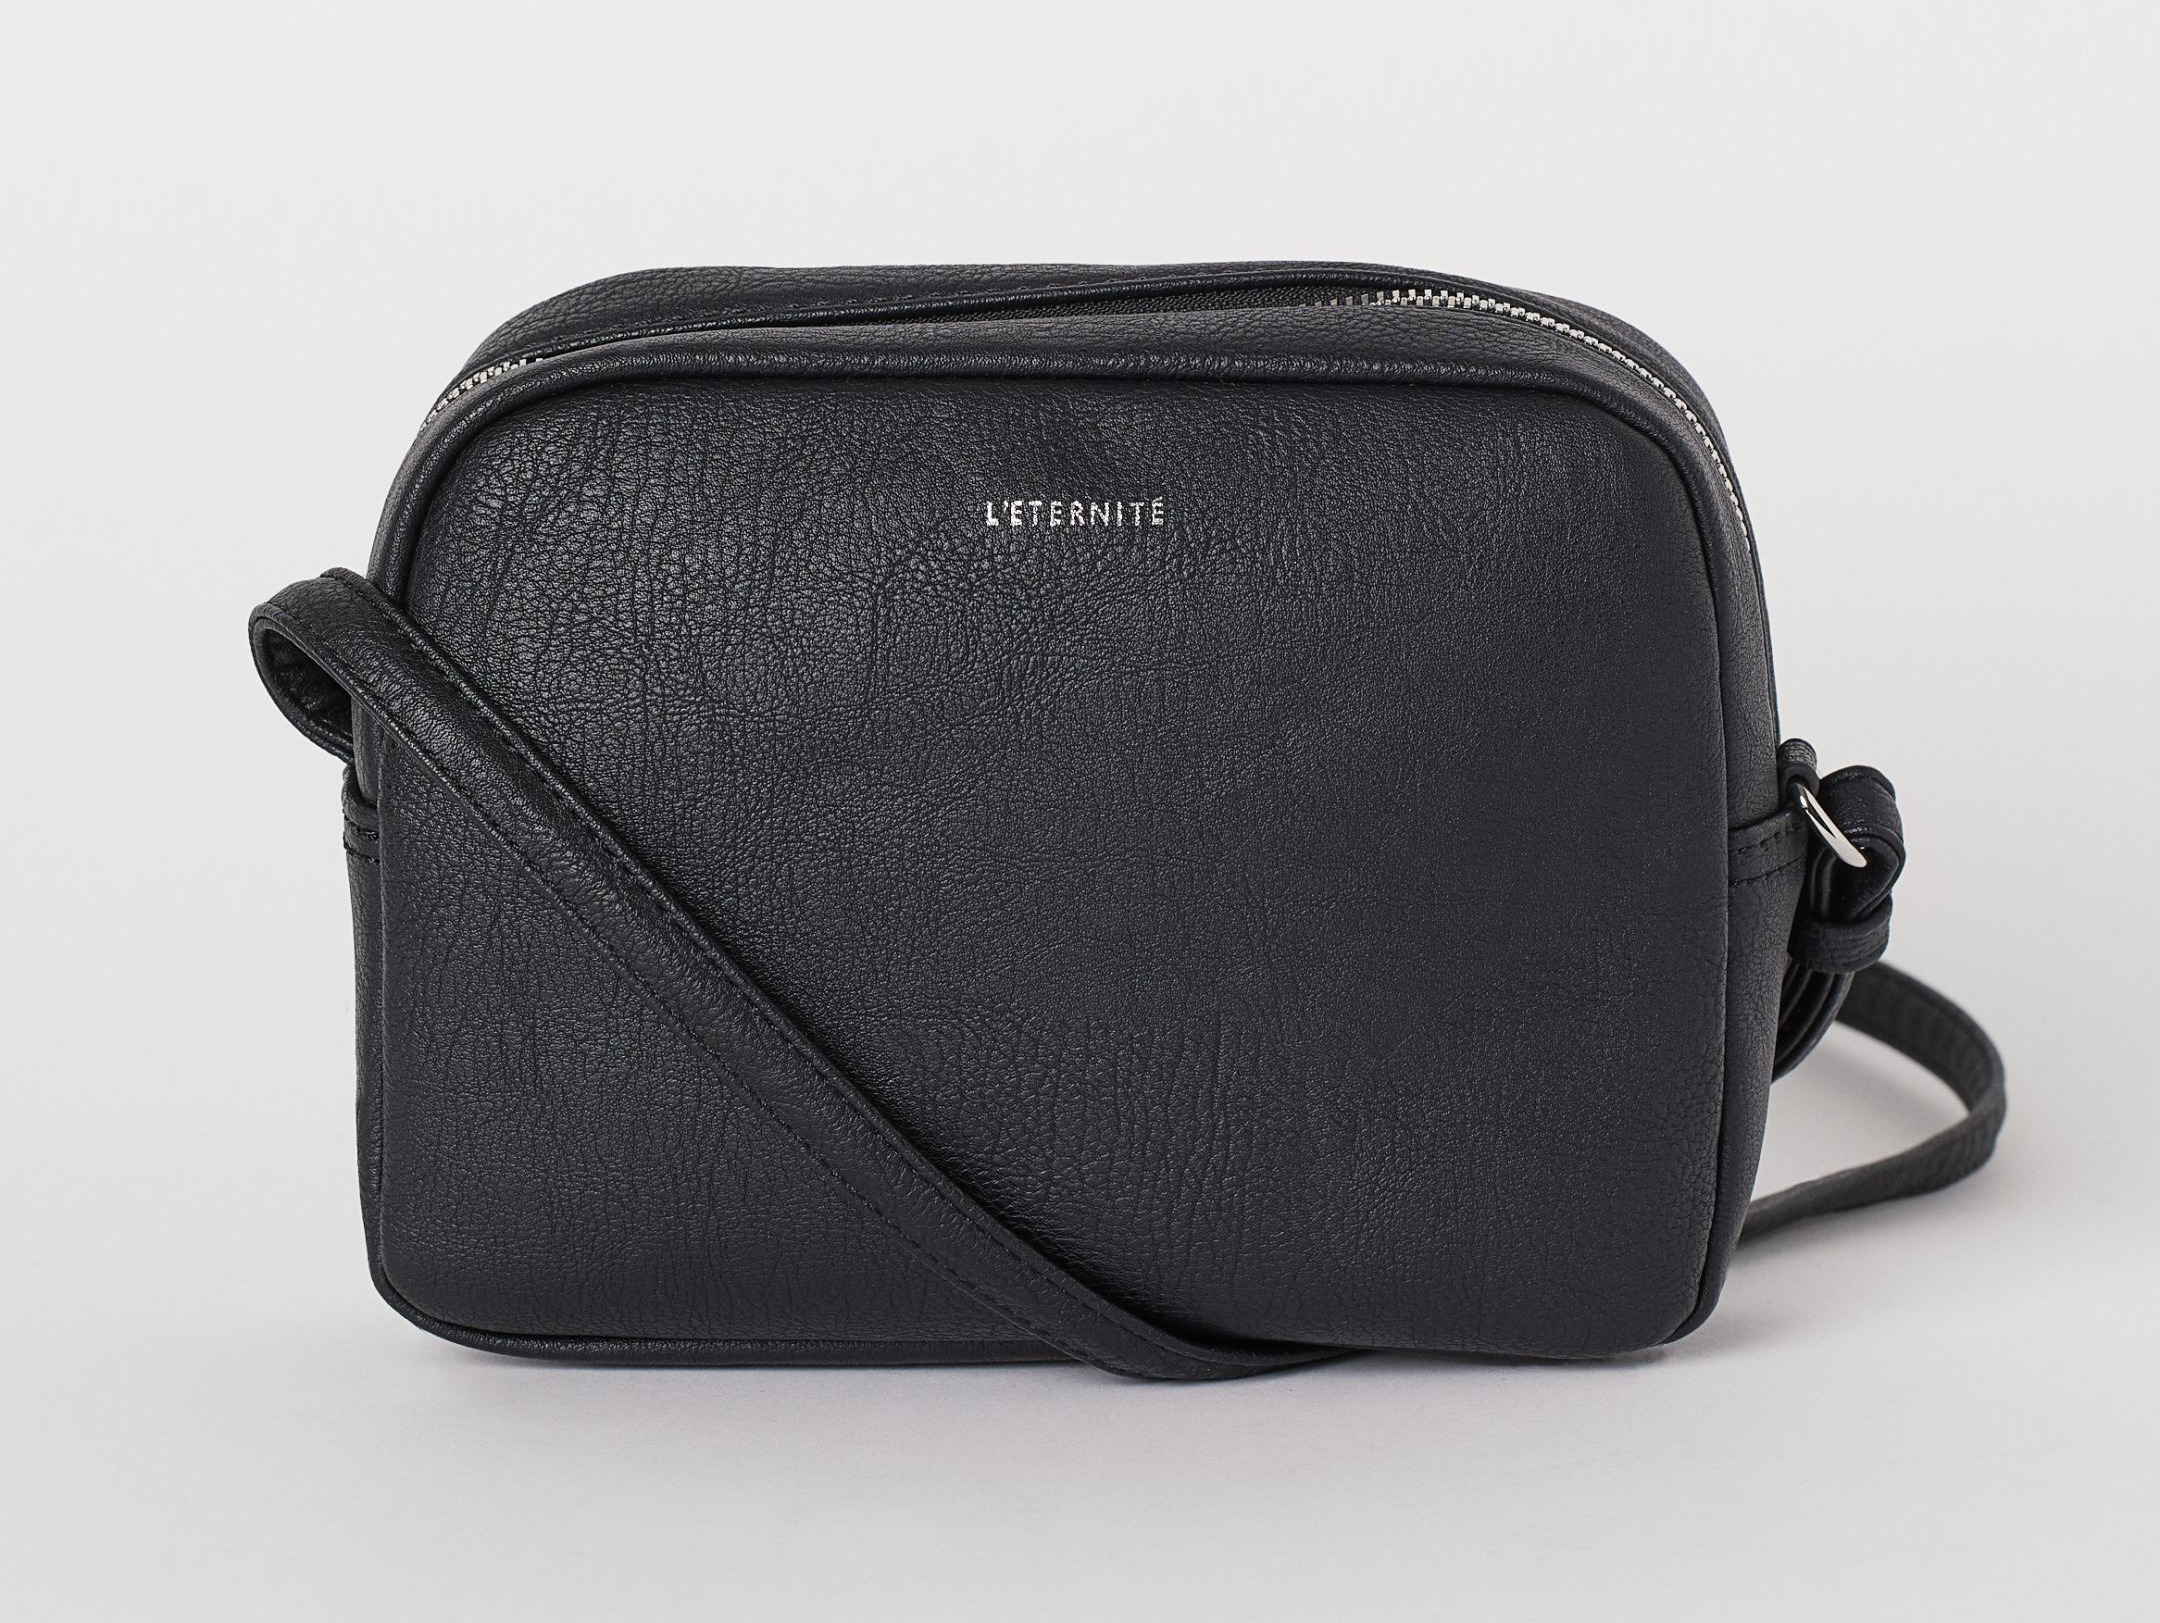 ...when you can get H&M's imitation leather version for £12.99